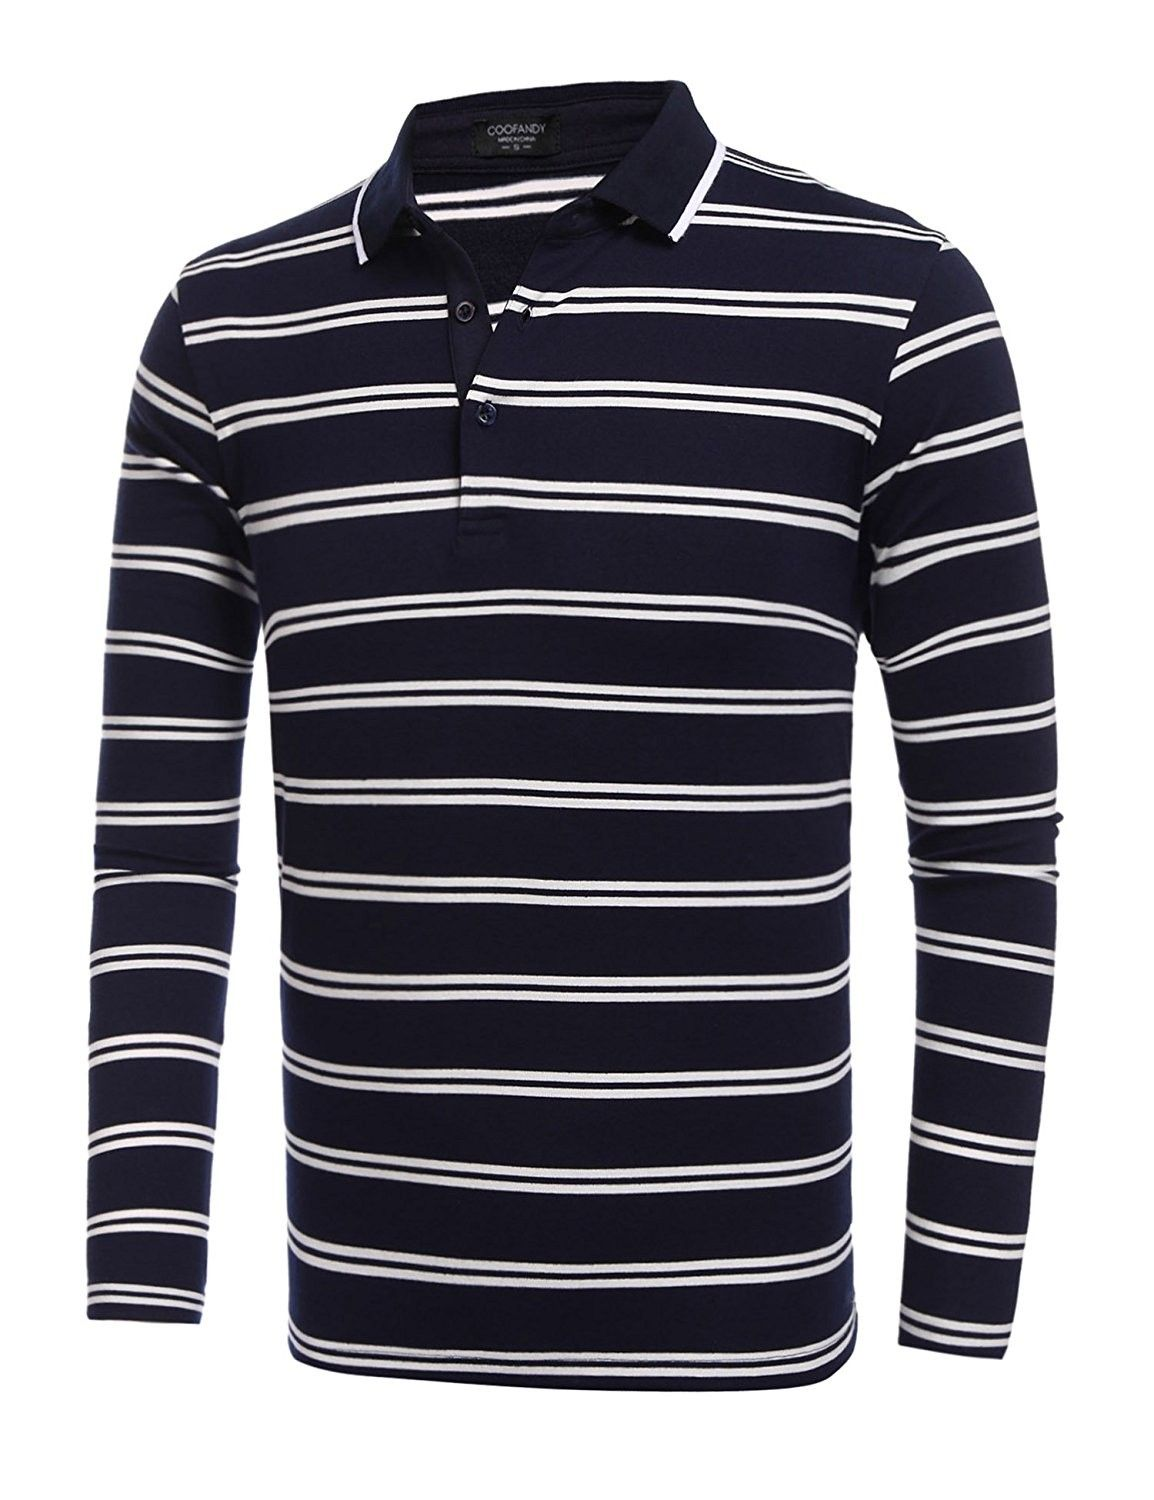 20b8777ae80d7 Blue And White Striped Long Sleeve T Shirt Mens - raveitsafe